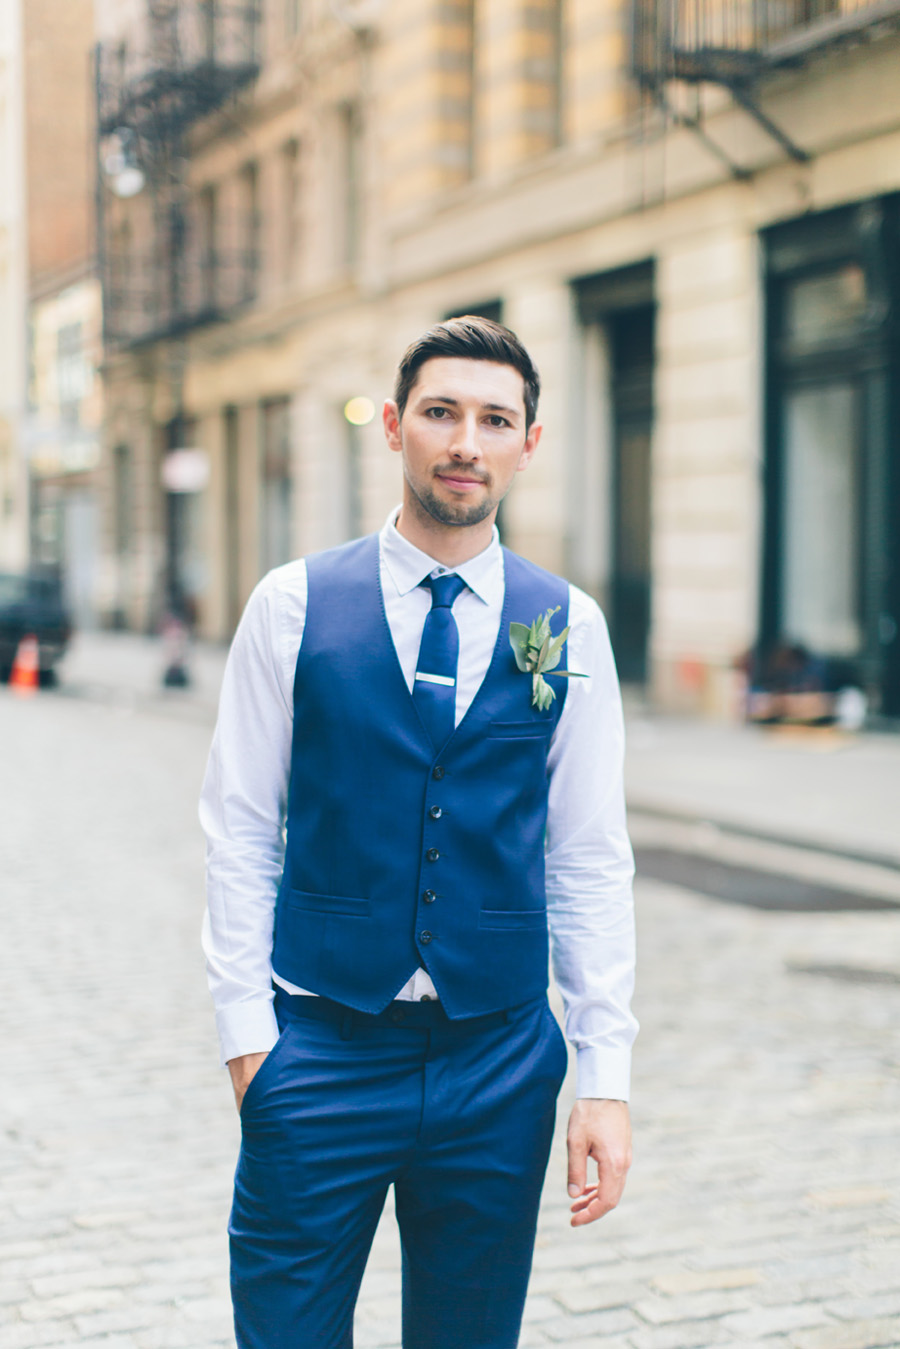 NYC-WEDDING-PHOTOGRAPHER-NY-CITYHALL-DESTINATION-ELOPEMENT-INTIMATE-WEDDING-CENTRAL-PARK-BROOKLYN-WEDDING-WILLIAMSBURG-SOHO-CHELSEA-THE-HIGH-LINE-051.jpg